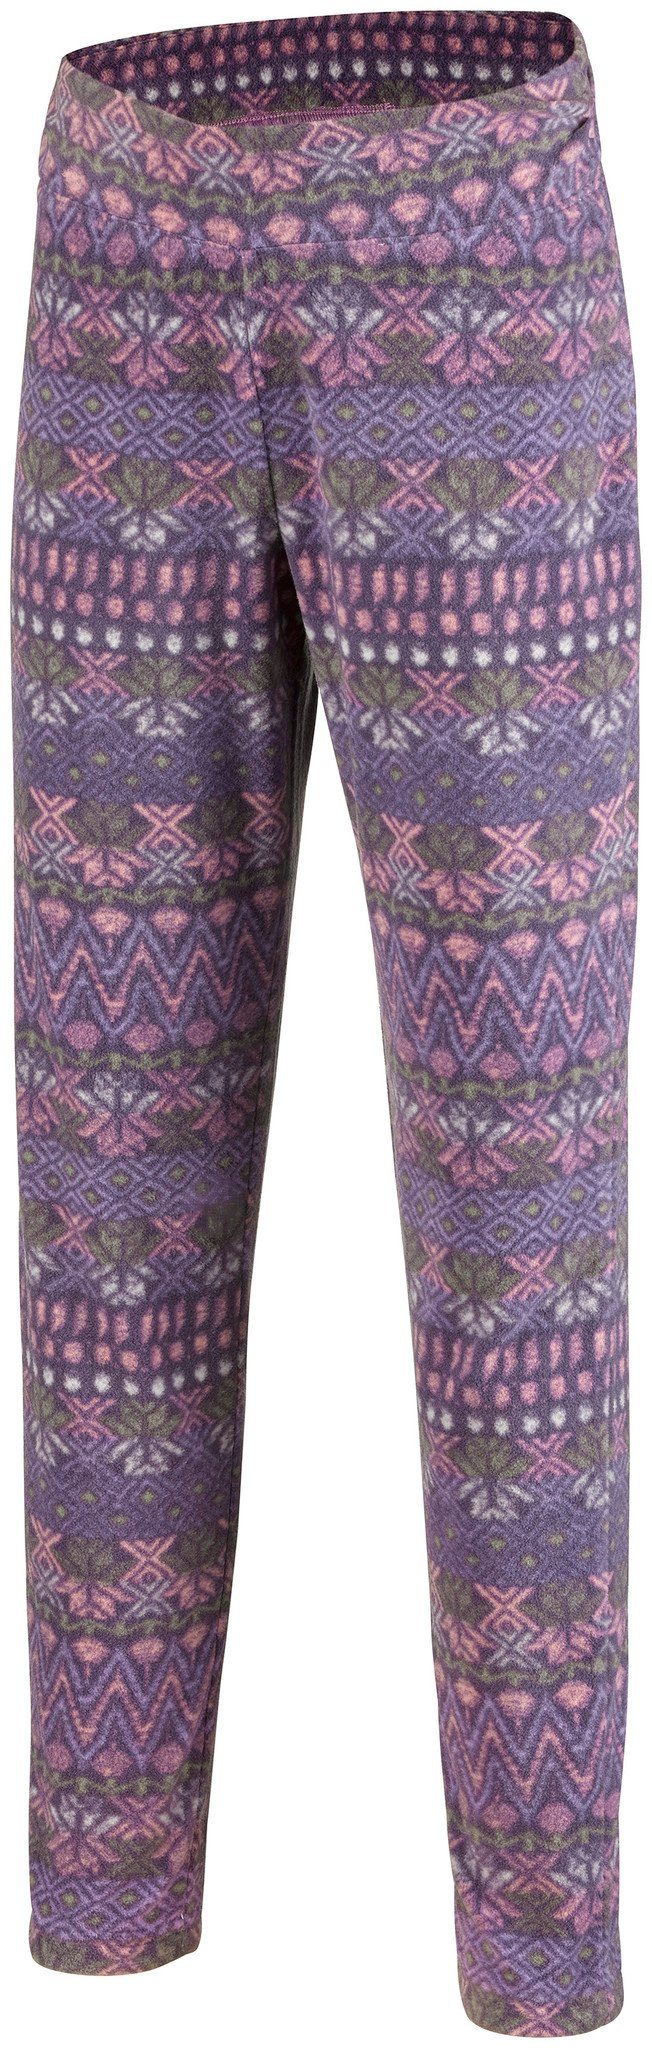 Columbia Hose »Glacial Printed Legging Girls«